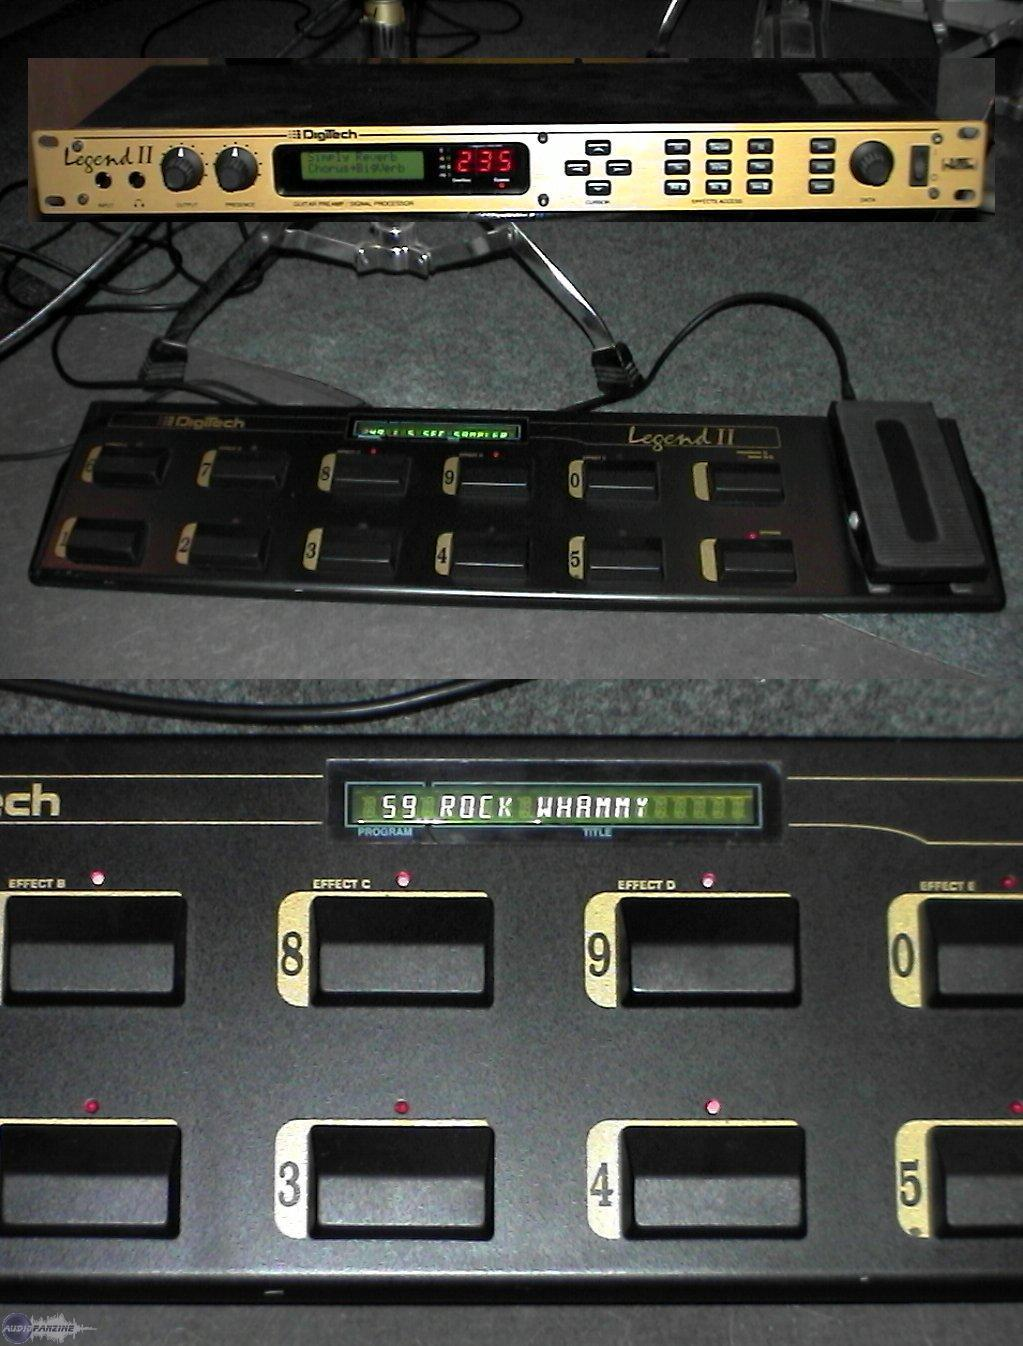 Digitech gsp-21 pro firmware upgrade gsp21 legend 2. 30 software.